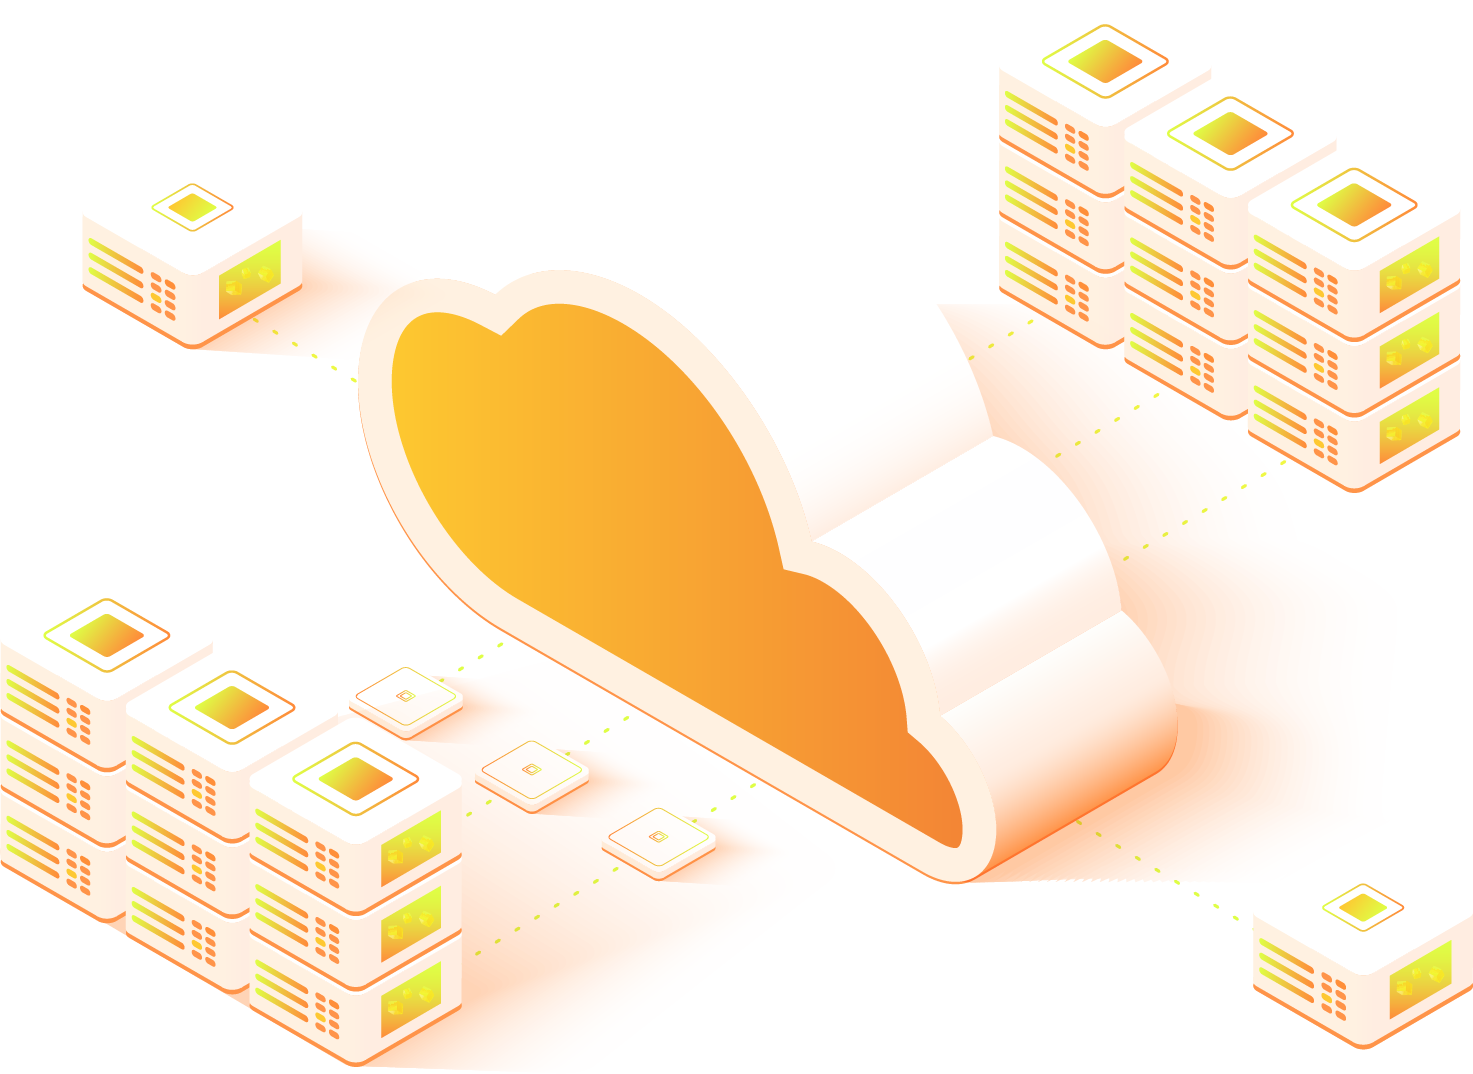 Image of cloud networking